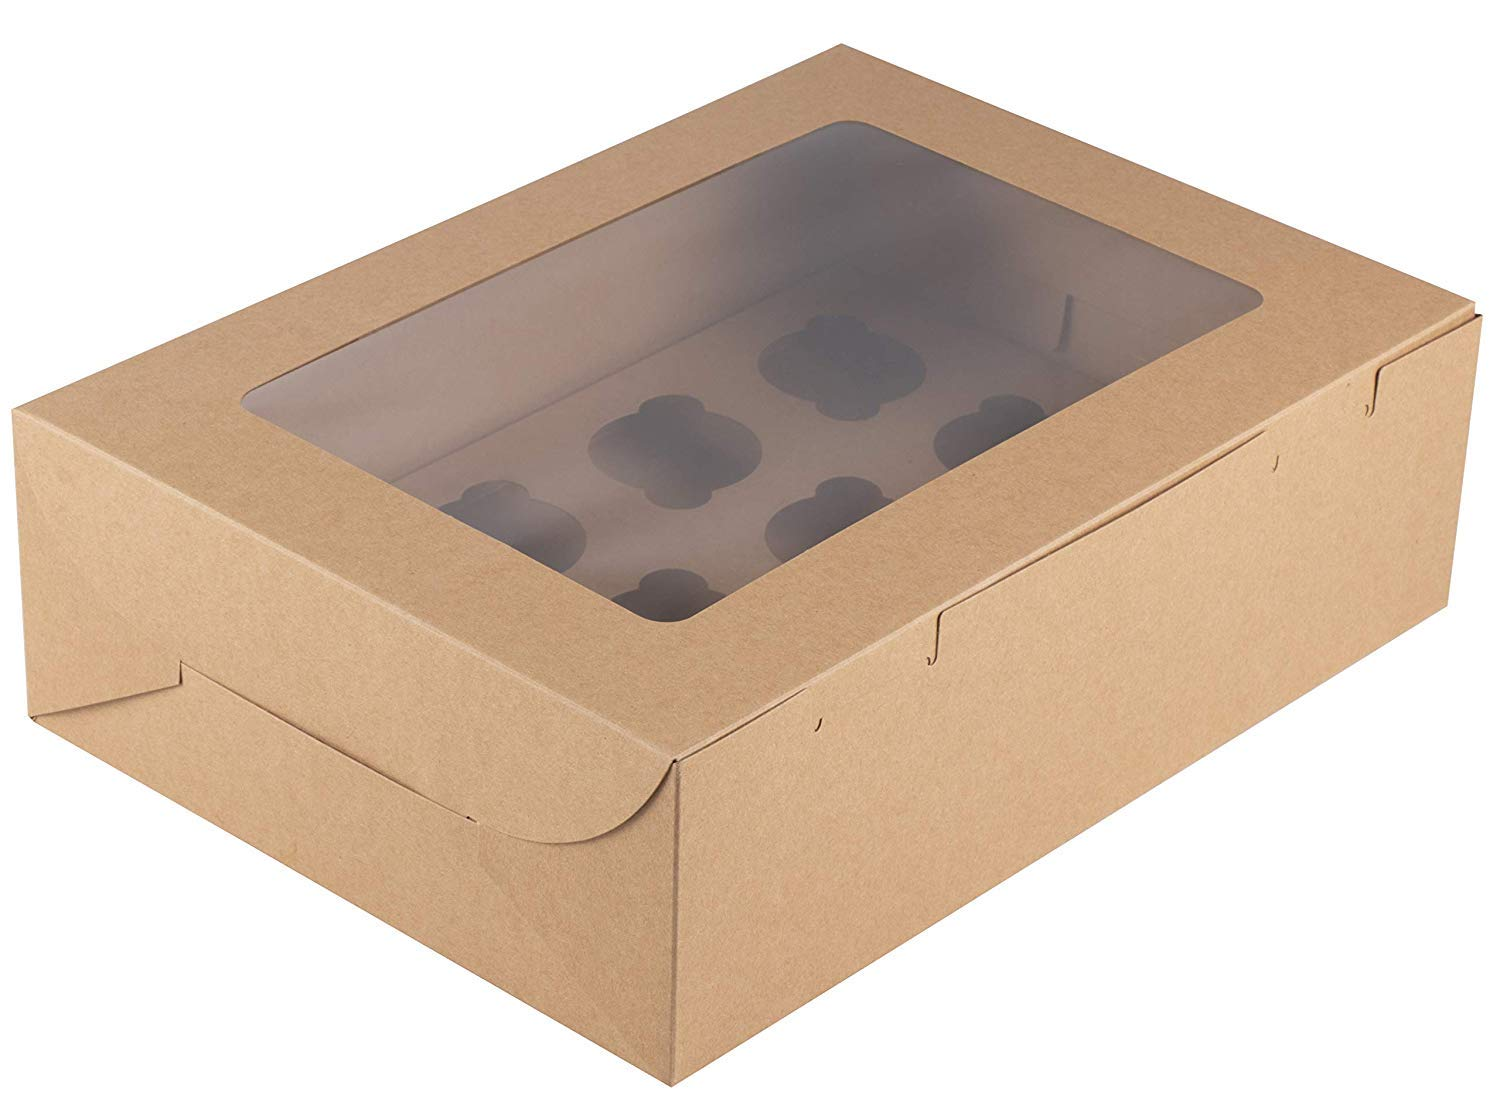 Cupcake Boxes - 50-Pack Large Cardboard Cupcake Boxes, Kraft Brown Bakery Box with Clear Window and Inserts, 12 Cavity, Disposable Take-Out Container, Bakeshop Supplies, 14 x 10 x 4 Inches by Juvale